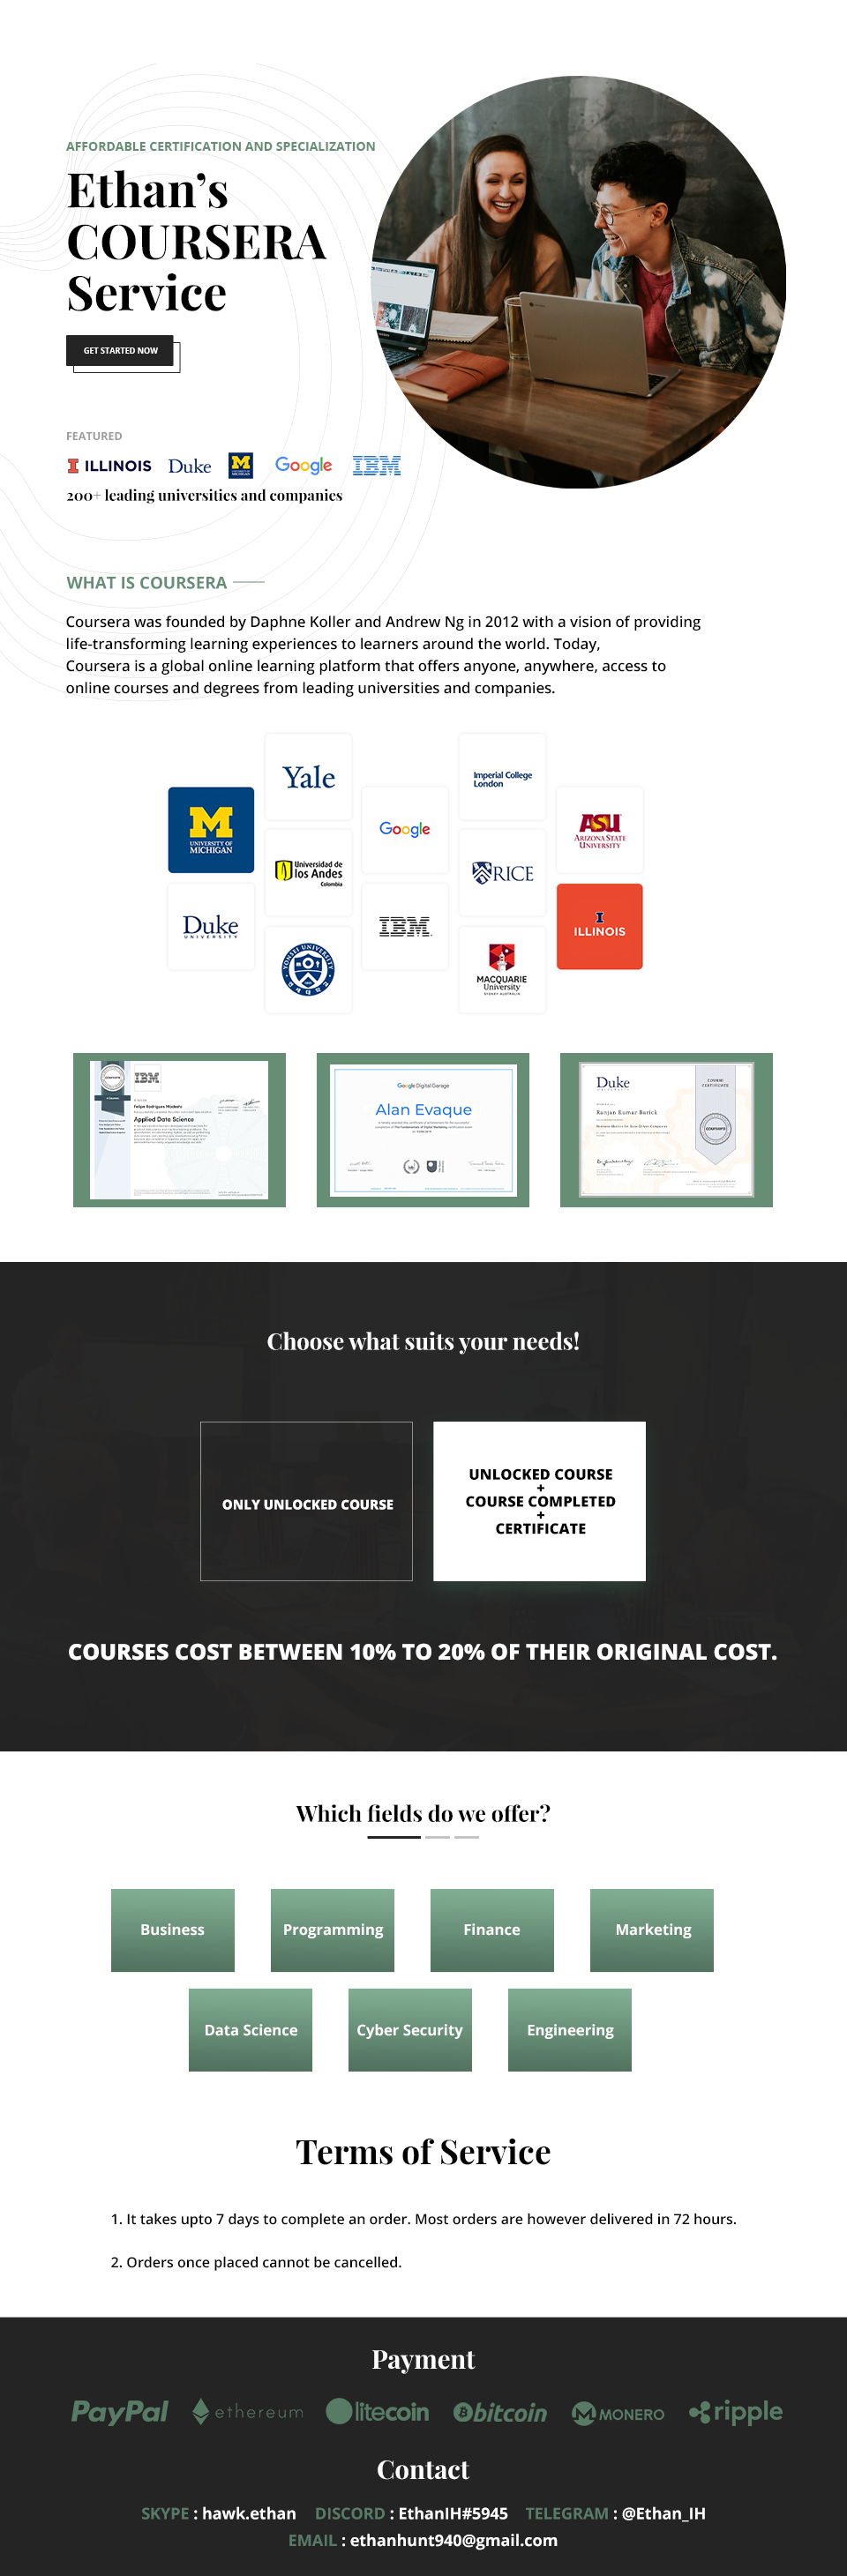 Ethan's Coursera Service - Sized.png